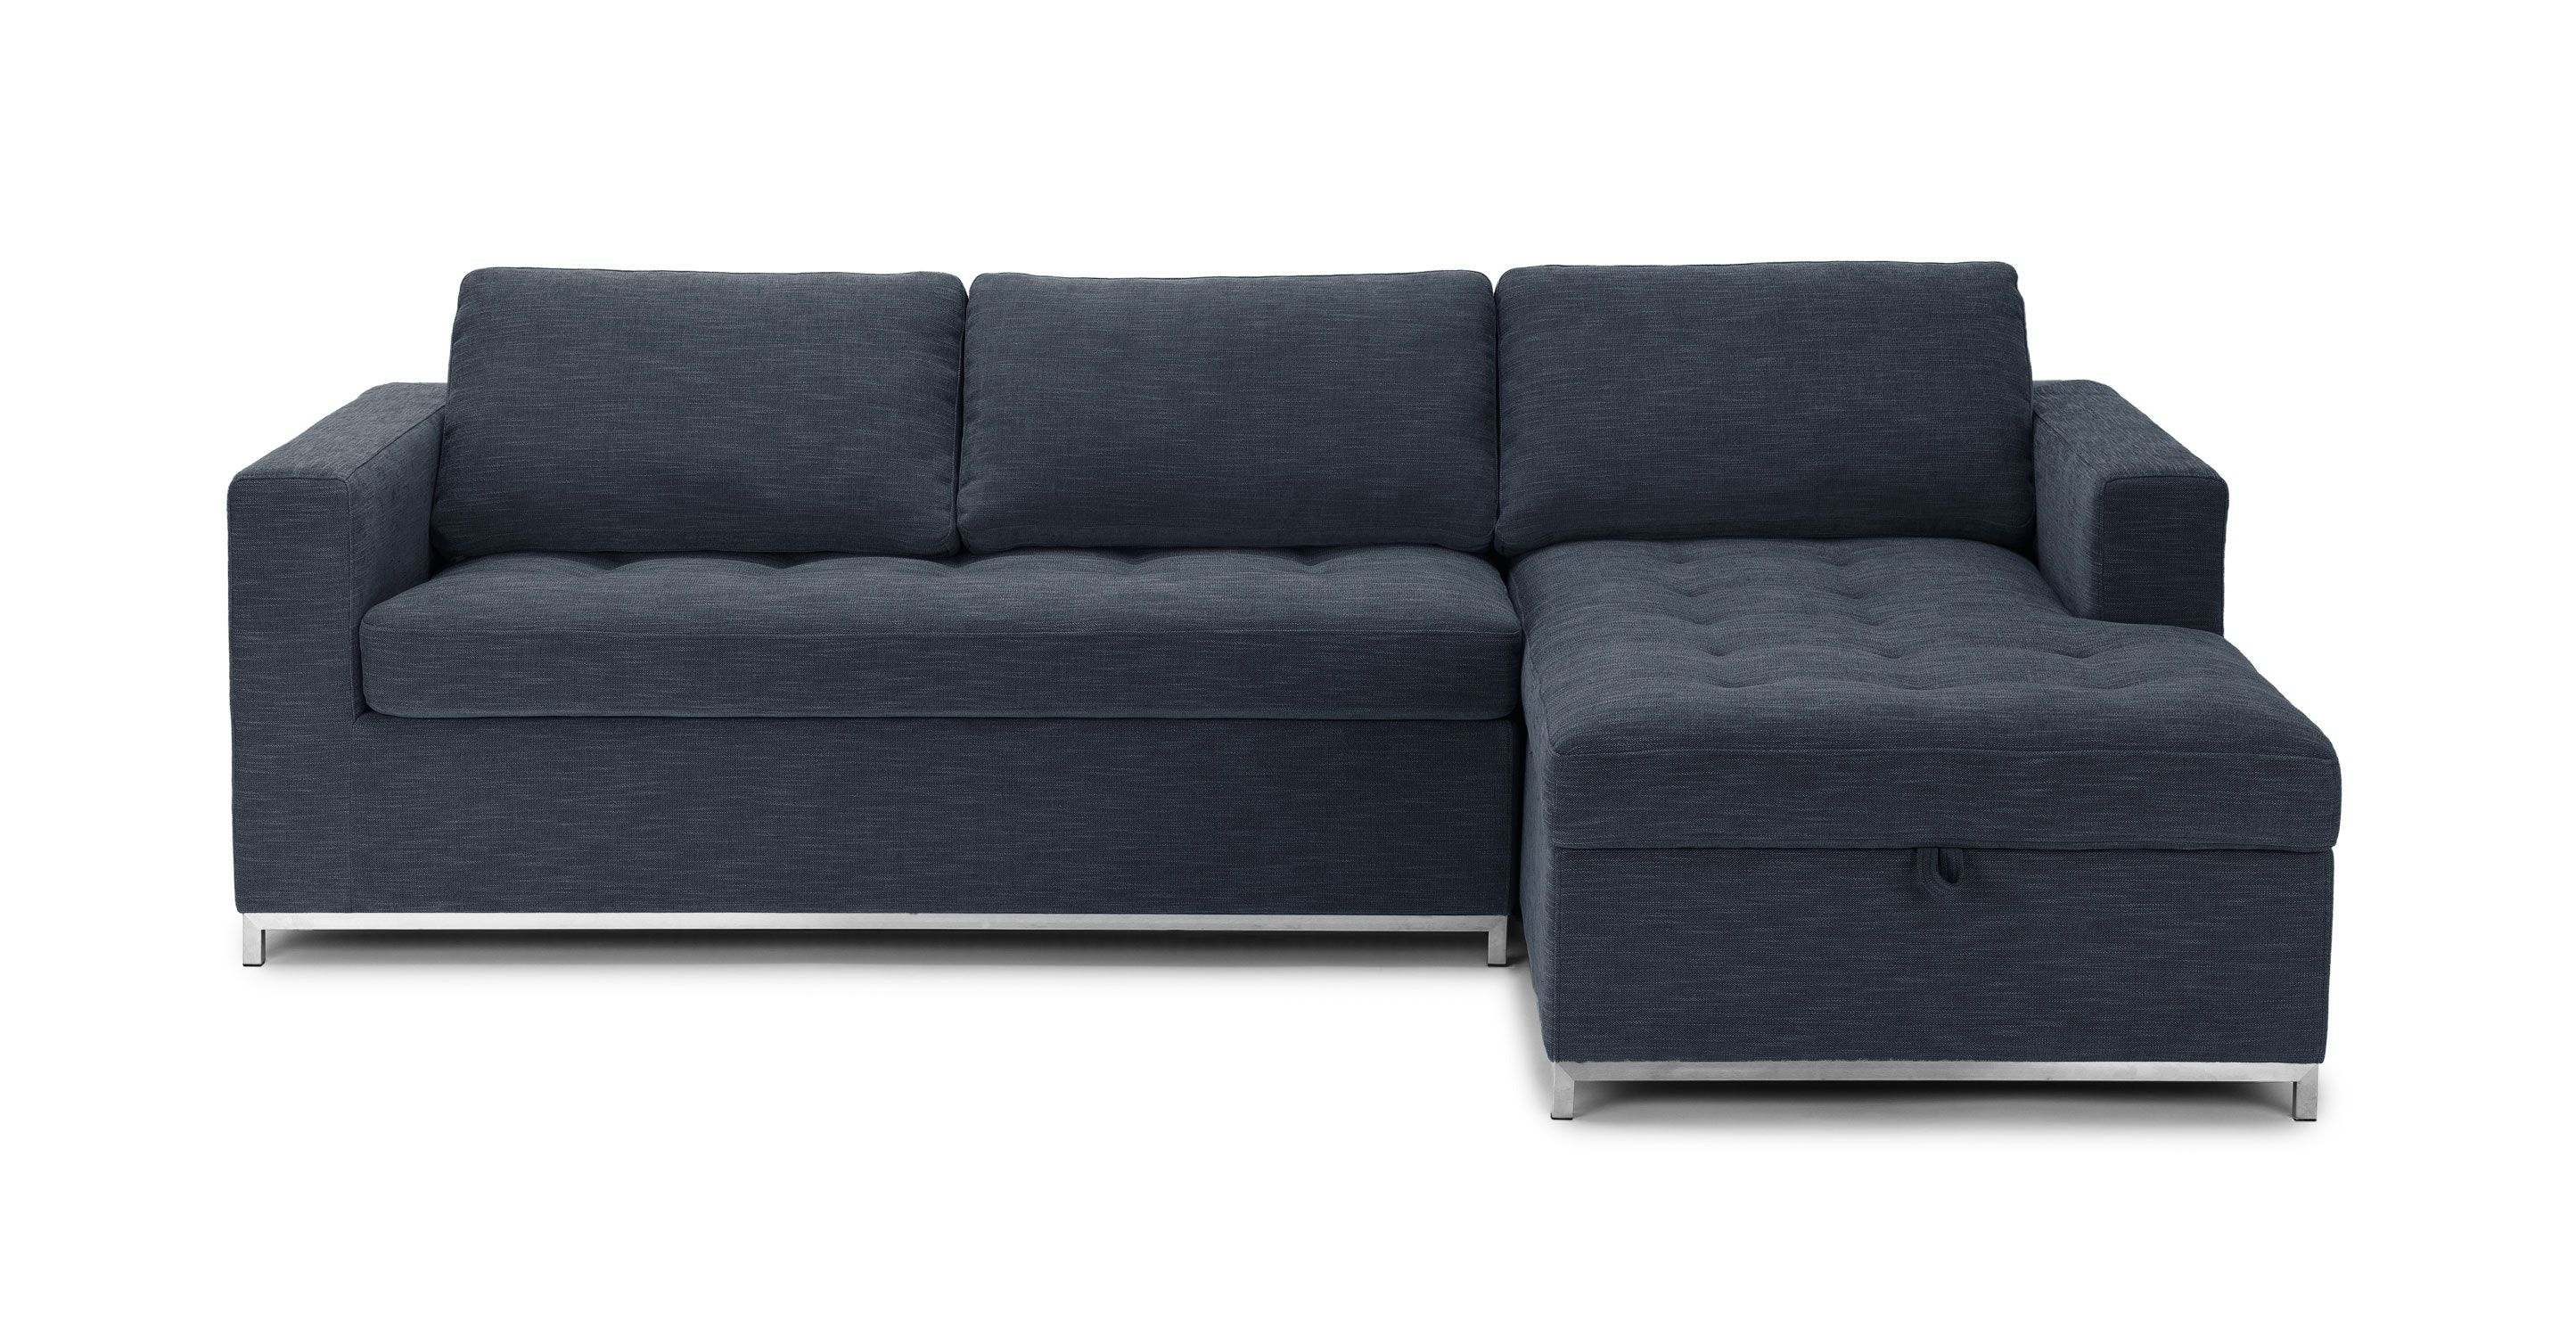 Sofa Beds Perth Dark Blue Sofa Bed Right Sectional Metal Legs Article Soma